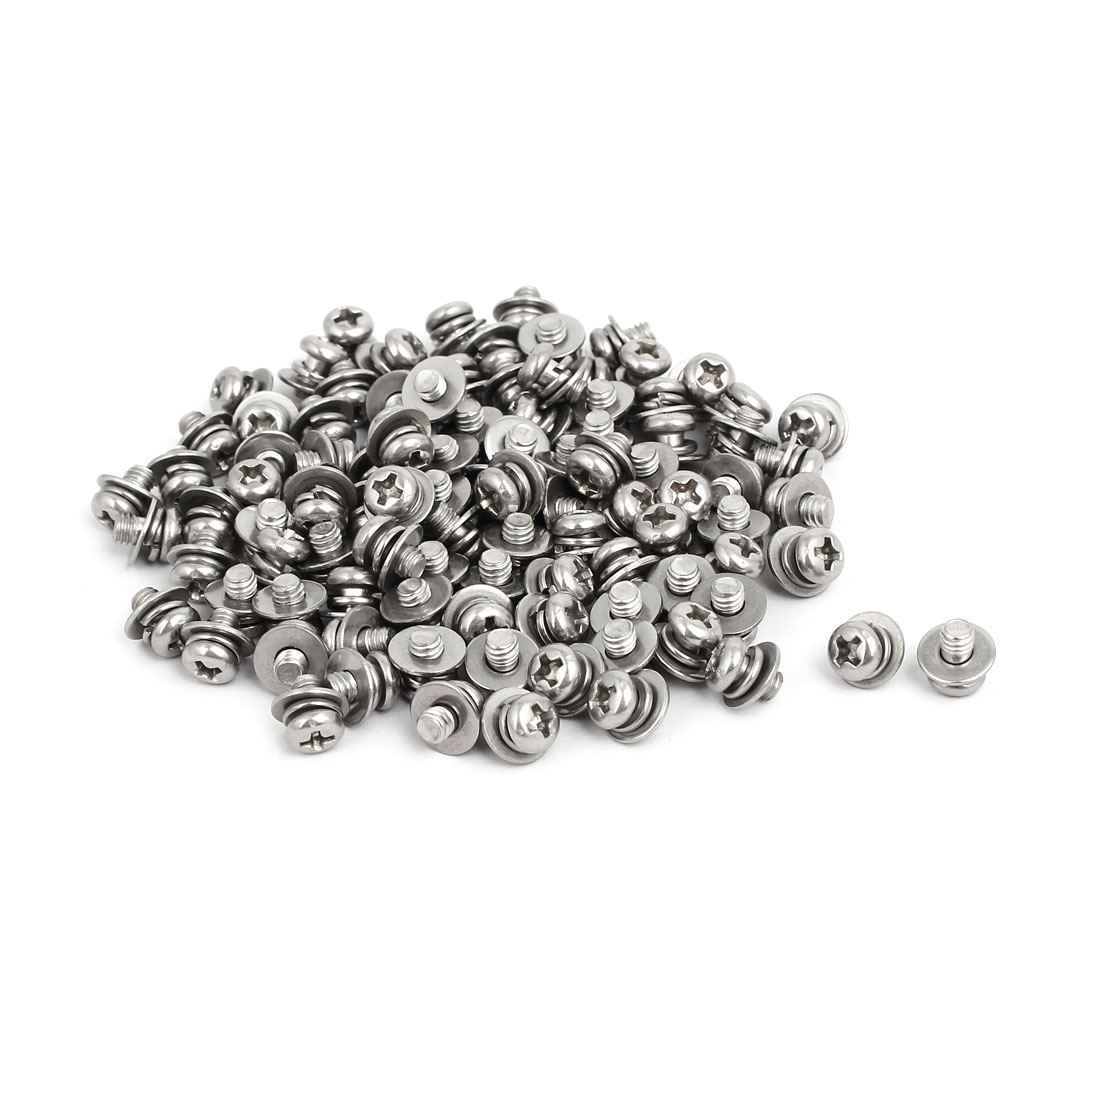 M4x6mm 304 Stainless Steel Phillips Pan Head Bolt Screw w Washer 100 Sets